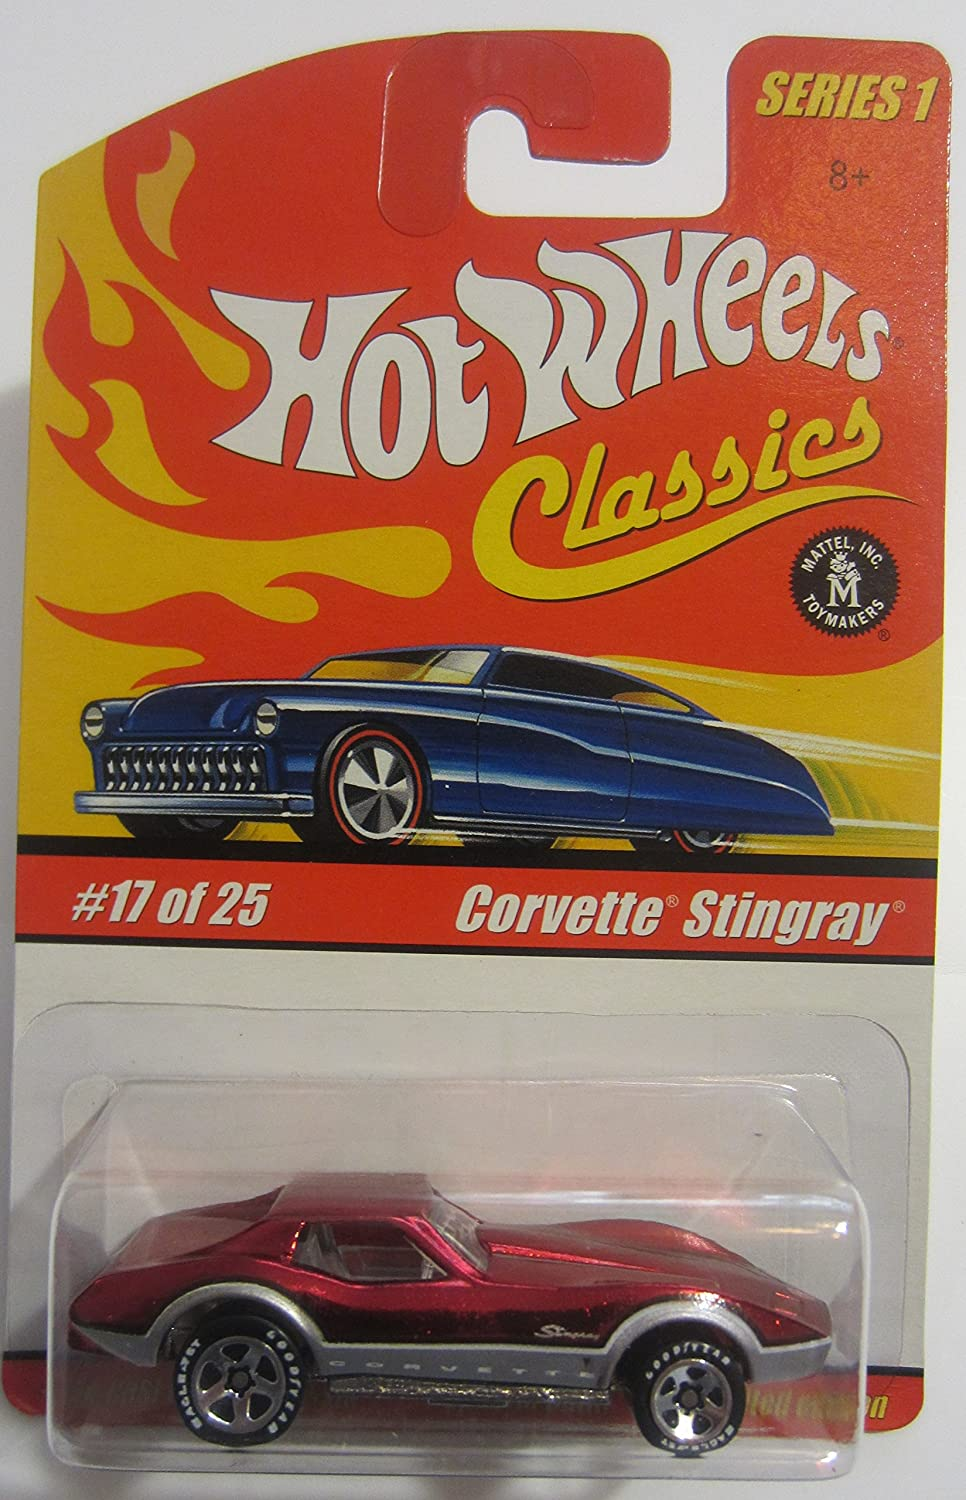 Hot Wheels Classics Series 1 Corvette Stingrau 17 of 25 by Hot Wheels